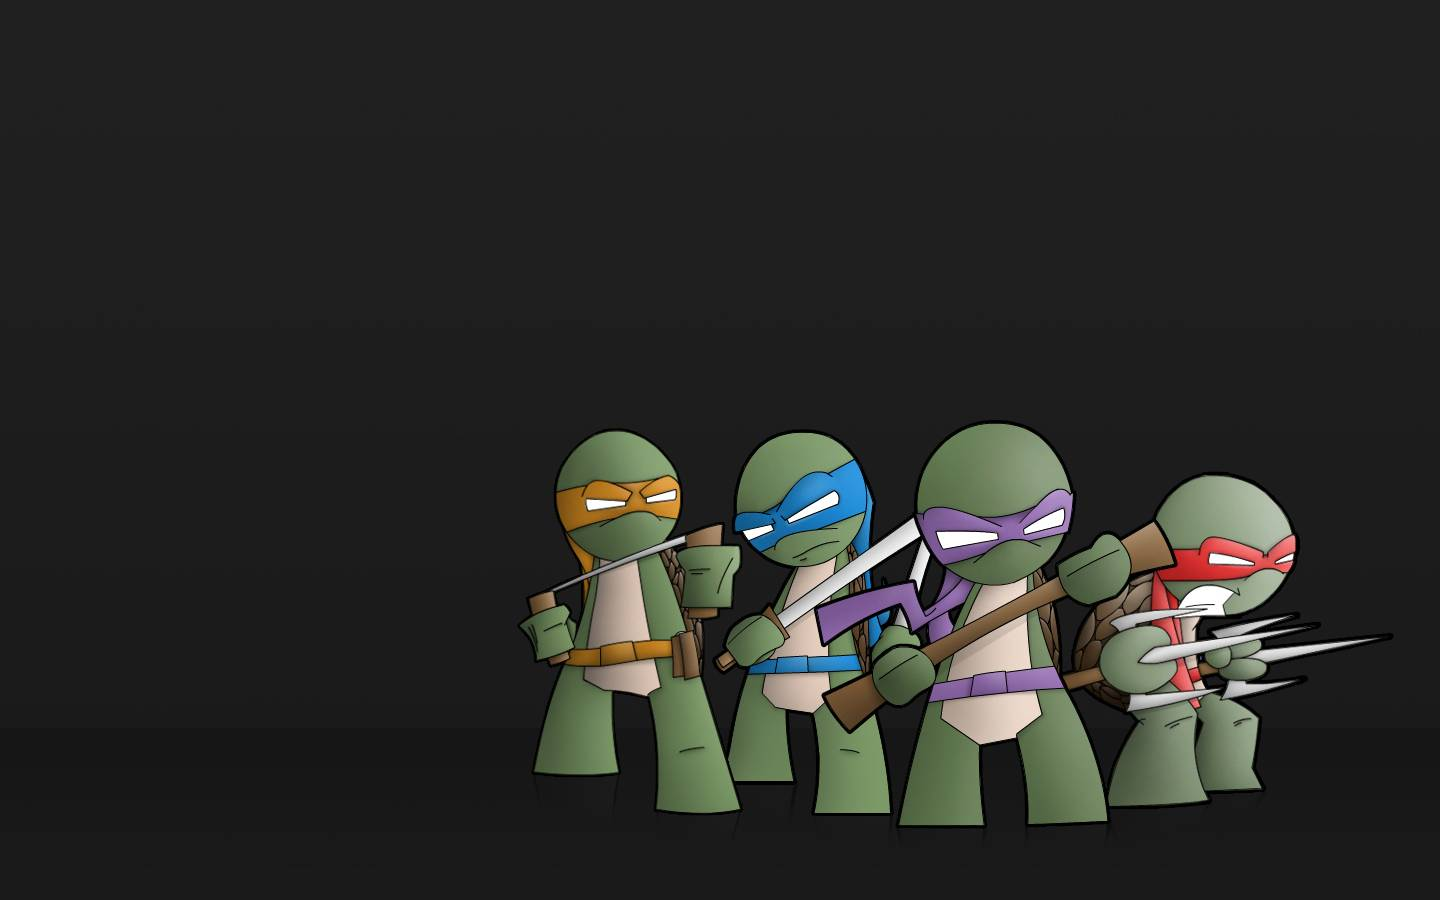 Tortugas Ninja Wallpaper Teenage Mutant Ninja Turtles